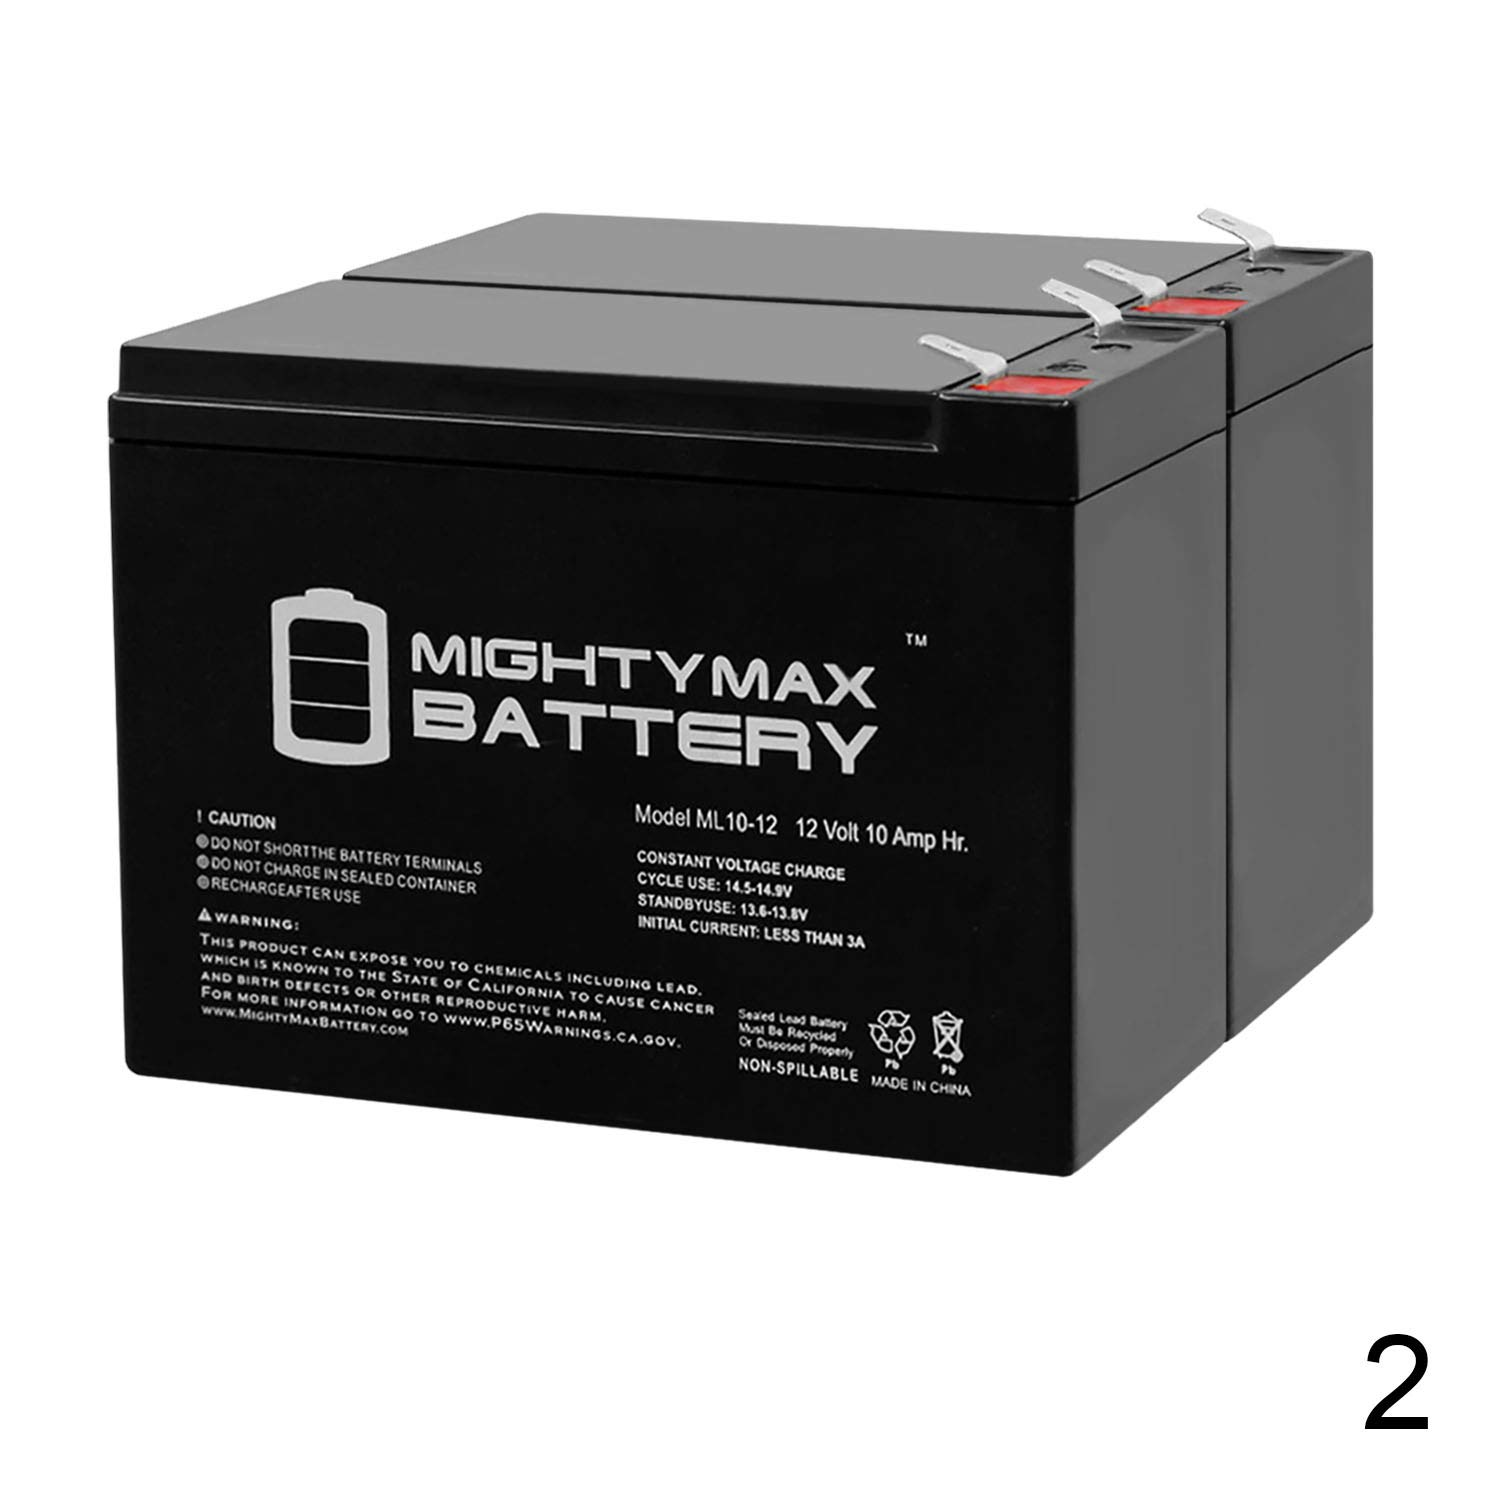 ML10-12 - 12 Volt 10 AH SLA Battery - Pack of 2 - Mighty Max Battery Brand Product